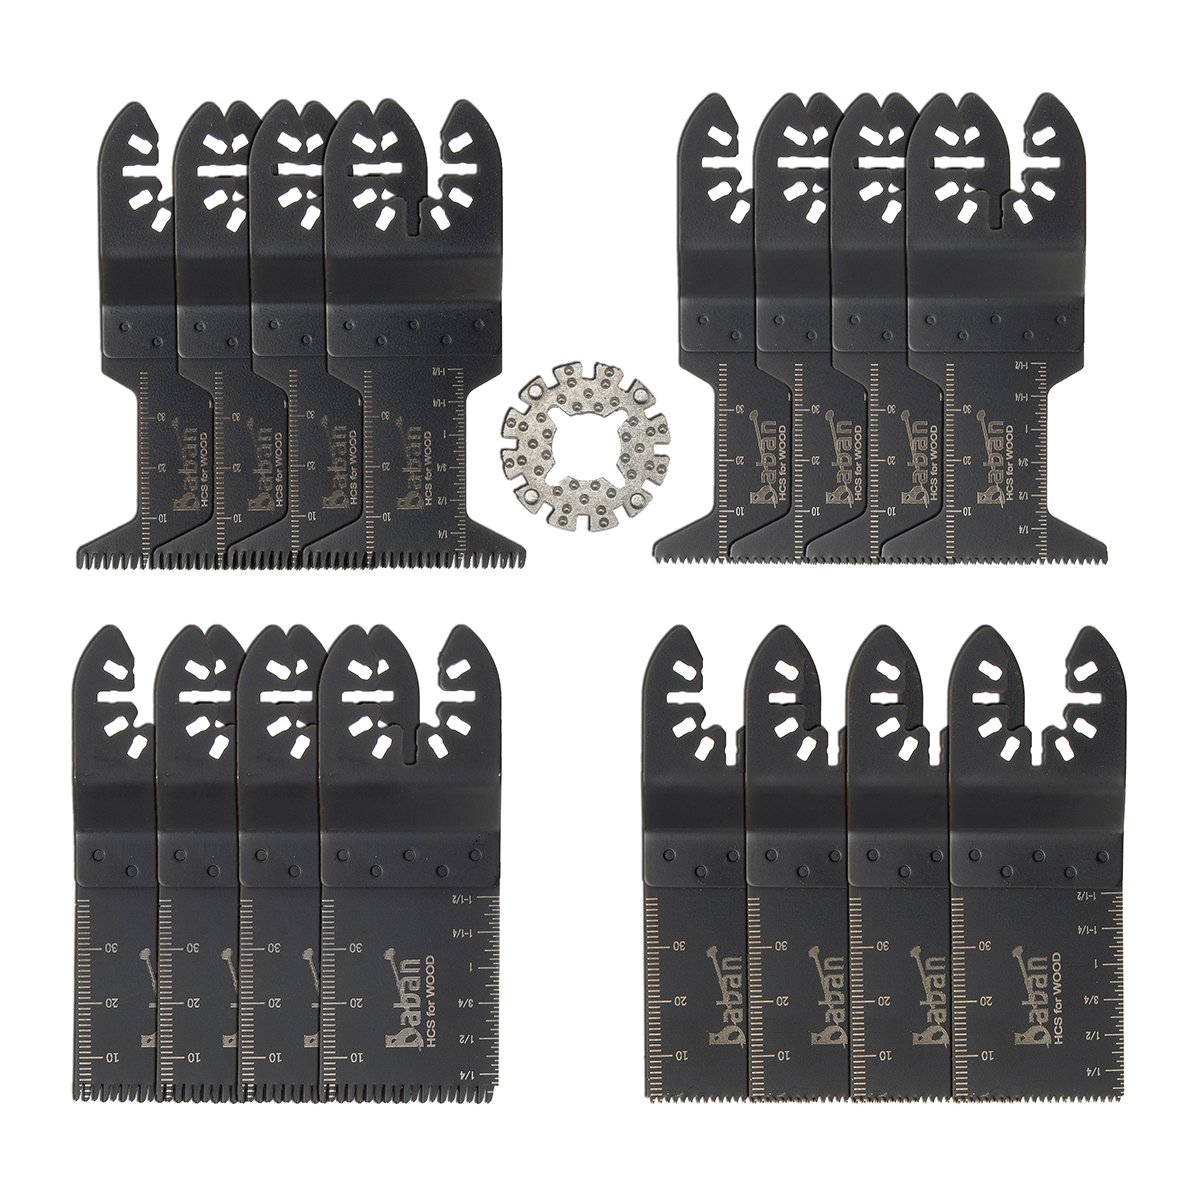 Saw Blades, Baban 17 Pcs Multitool Blades Wood/Soft Metal Mixed Oscillating Quick Release Saw Blades Compatible with Dewalt, Dremel Multi-Max, Bosch, Fein, Black and Decker, Chicago, Craftsman Bolt-on